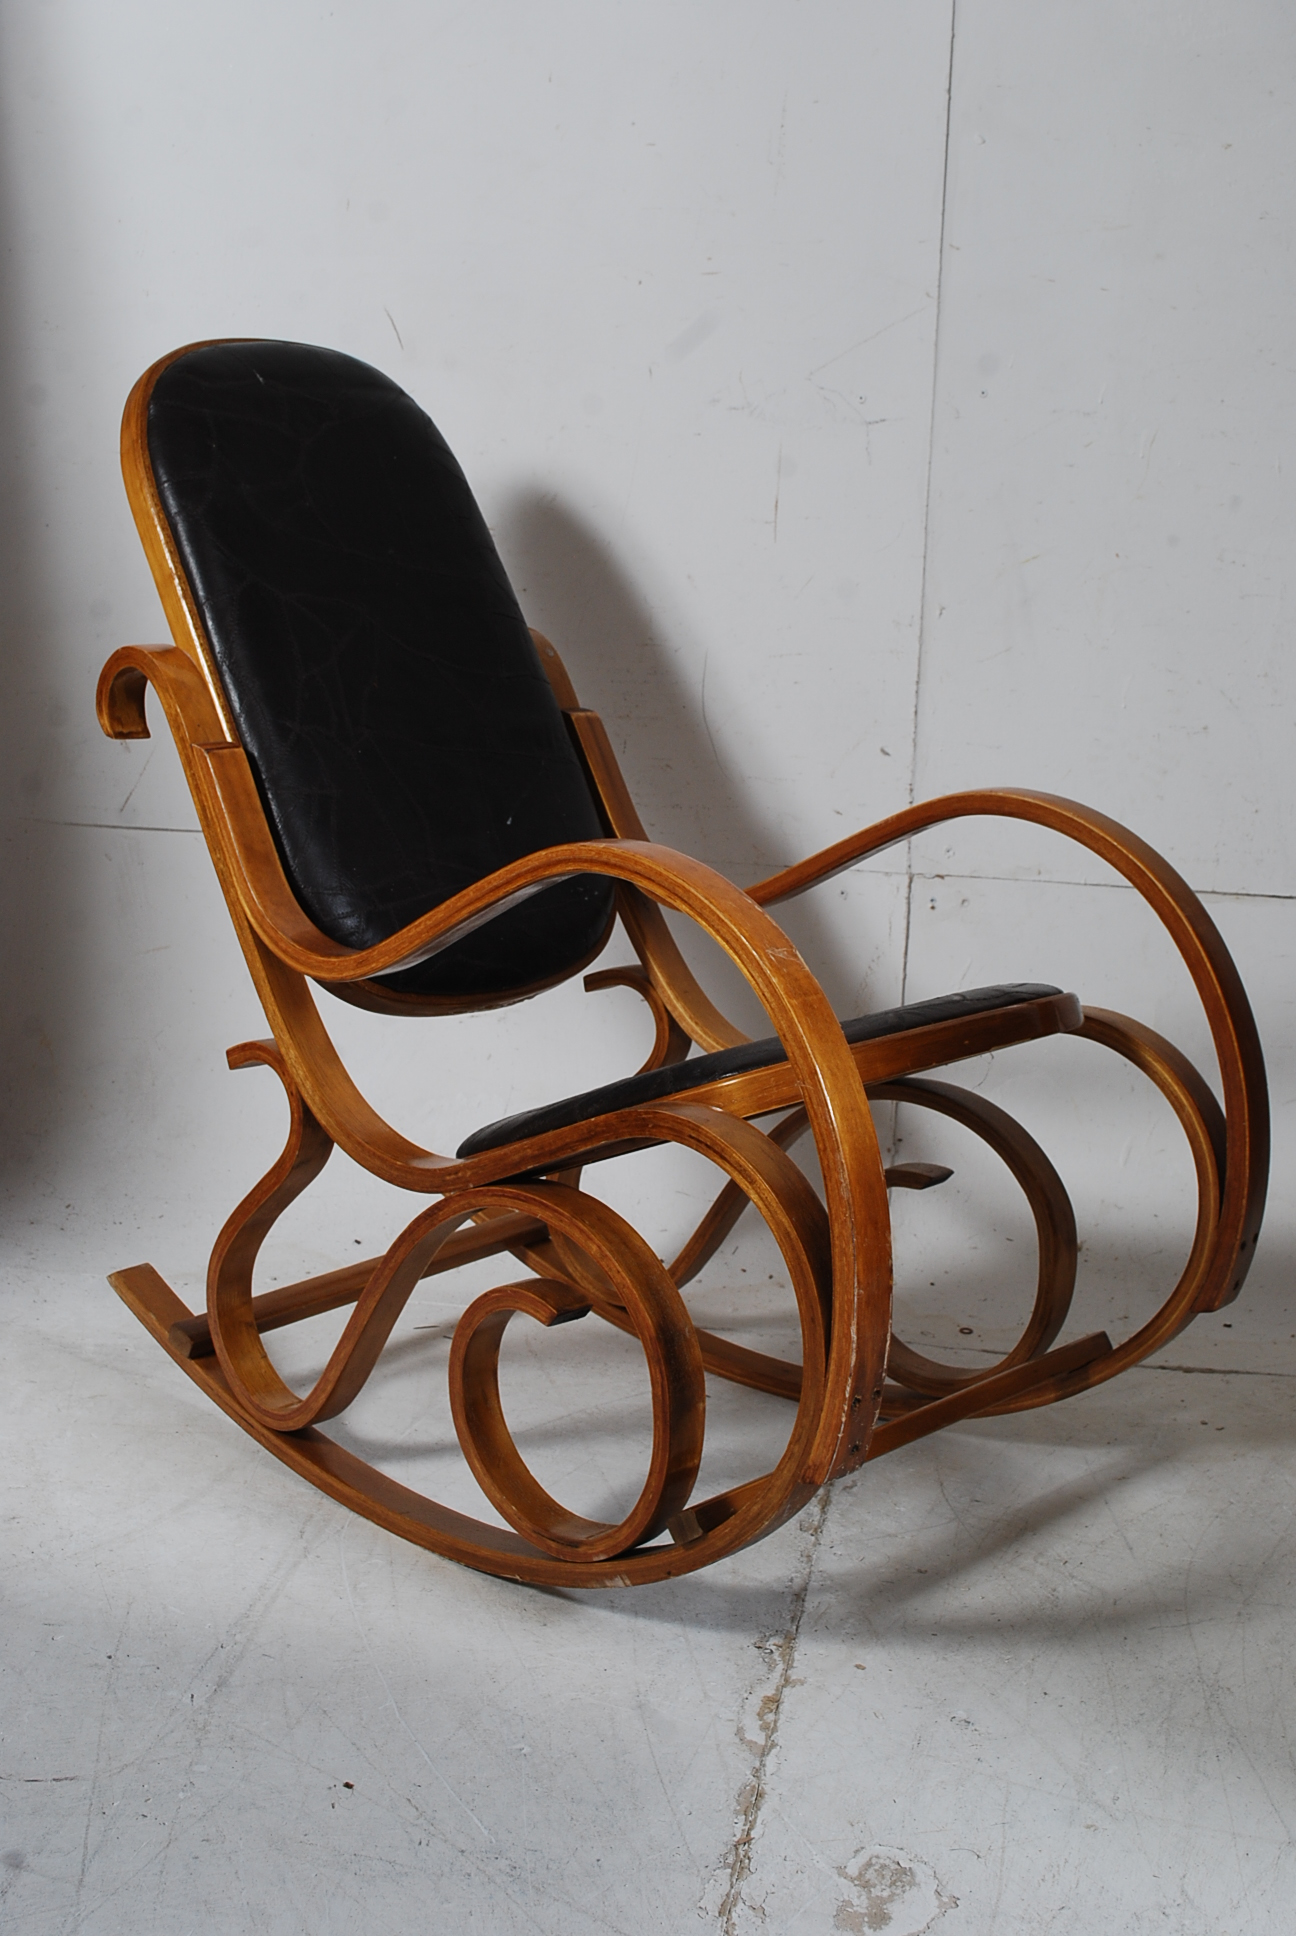 A Thonet Style Bentwood And Leather Rocking Chair The Patchwork